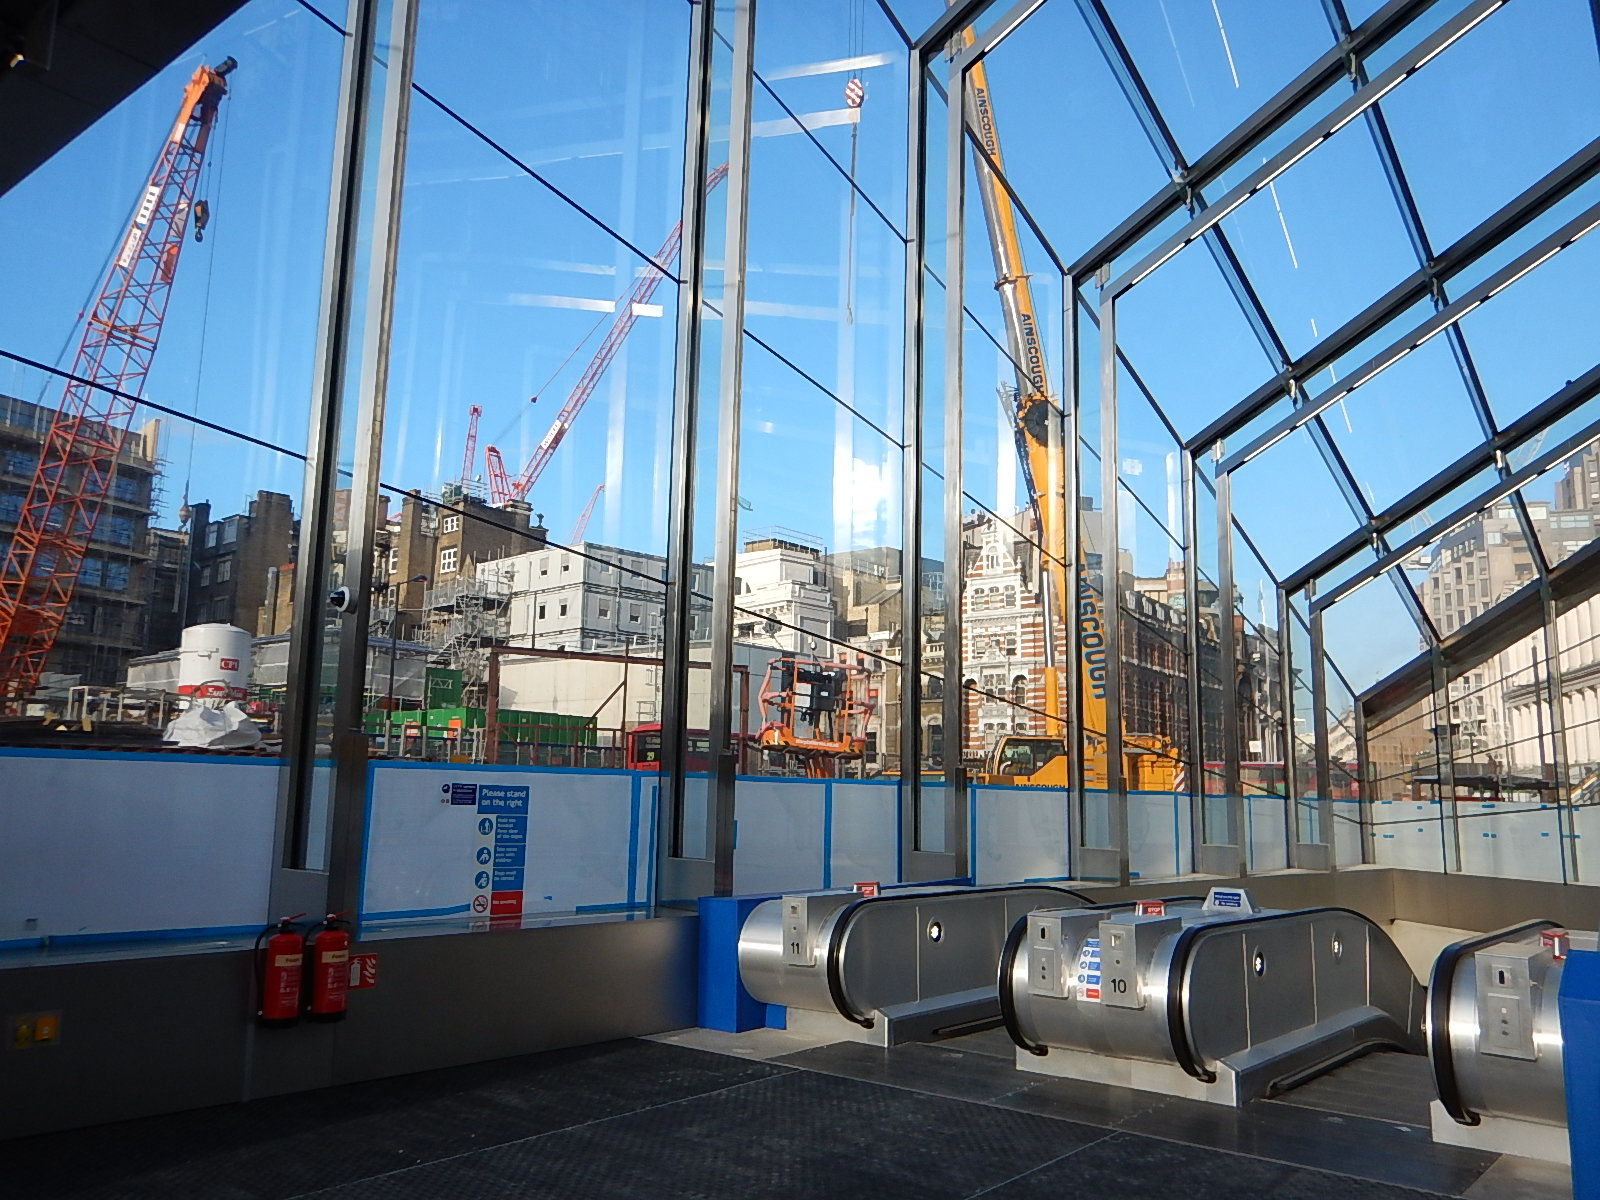 Tottenham Court Road Station Gains A Giant Fosterito The